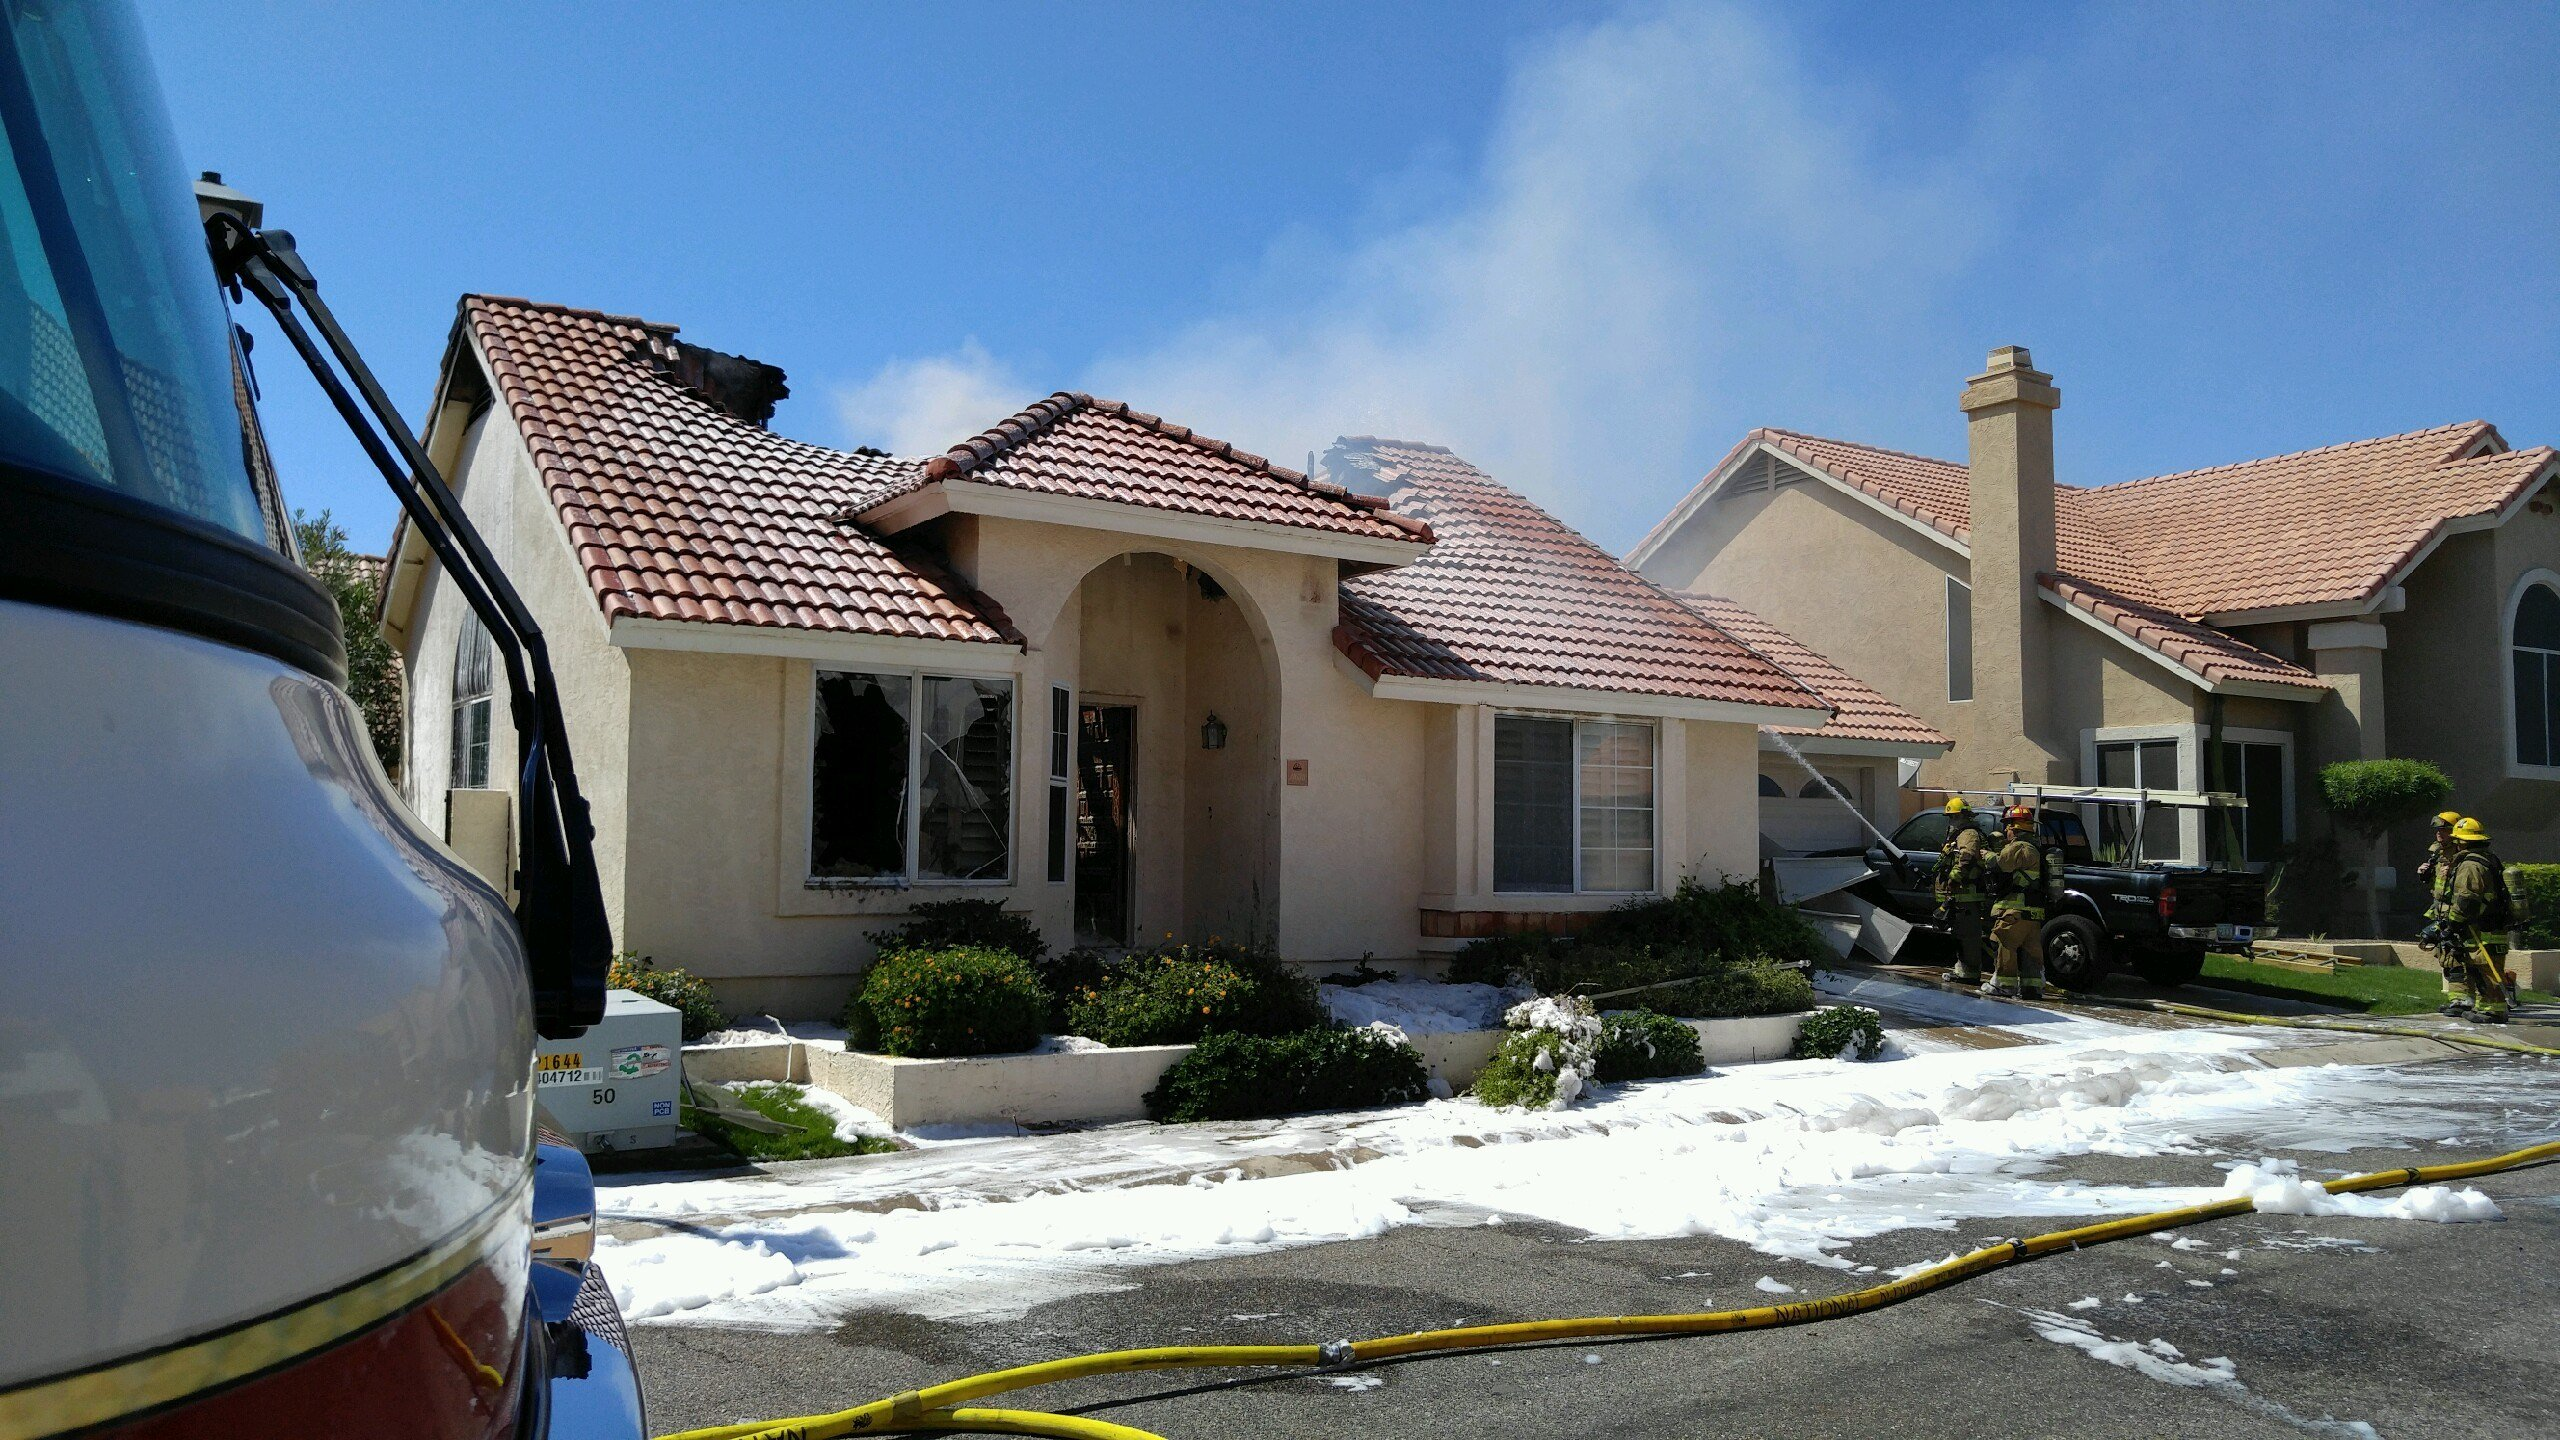 Fire destroys a home in Phoenix Sunday.  19 March 2017 [SOURCE: 3TV/CBS5 News]